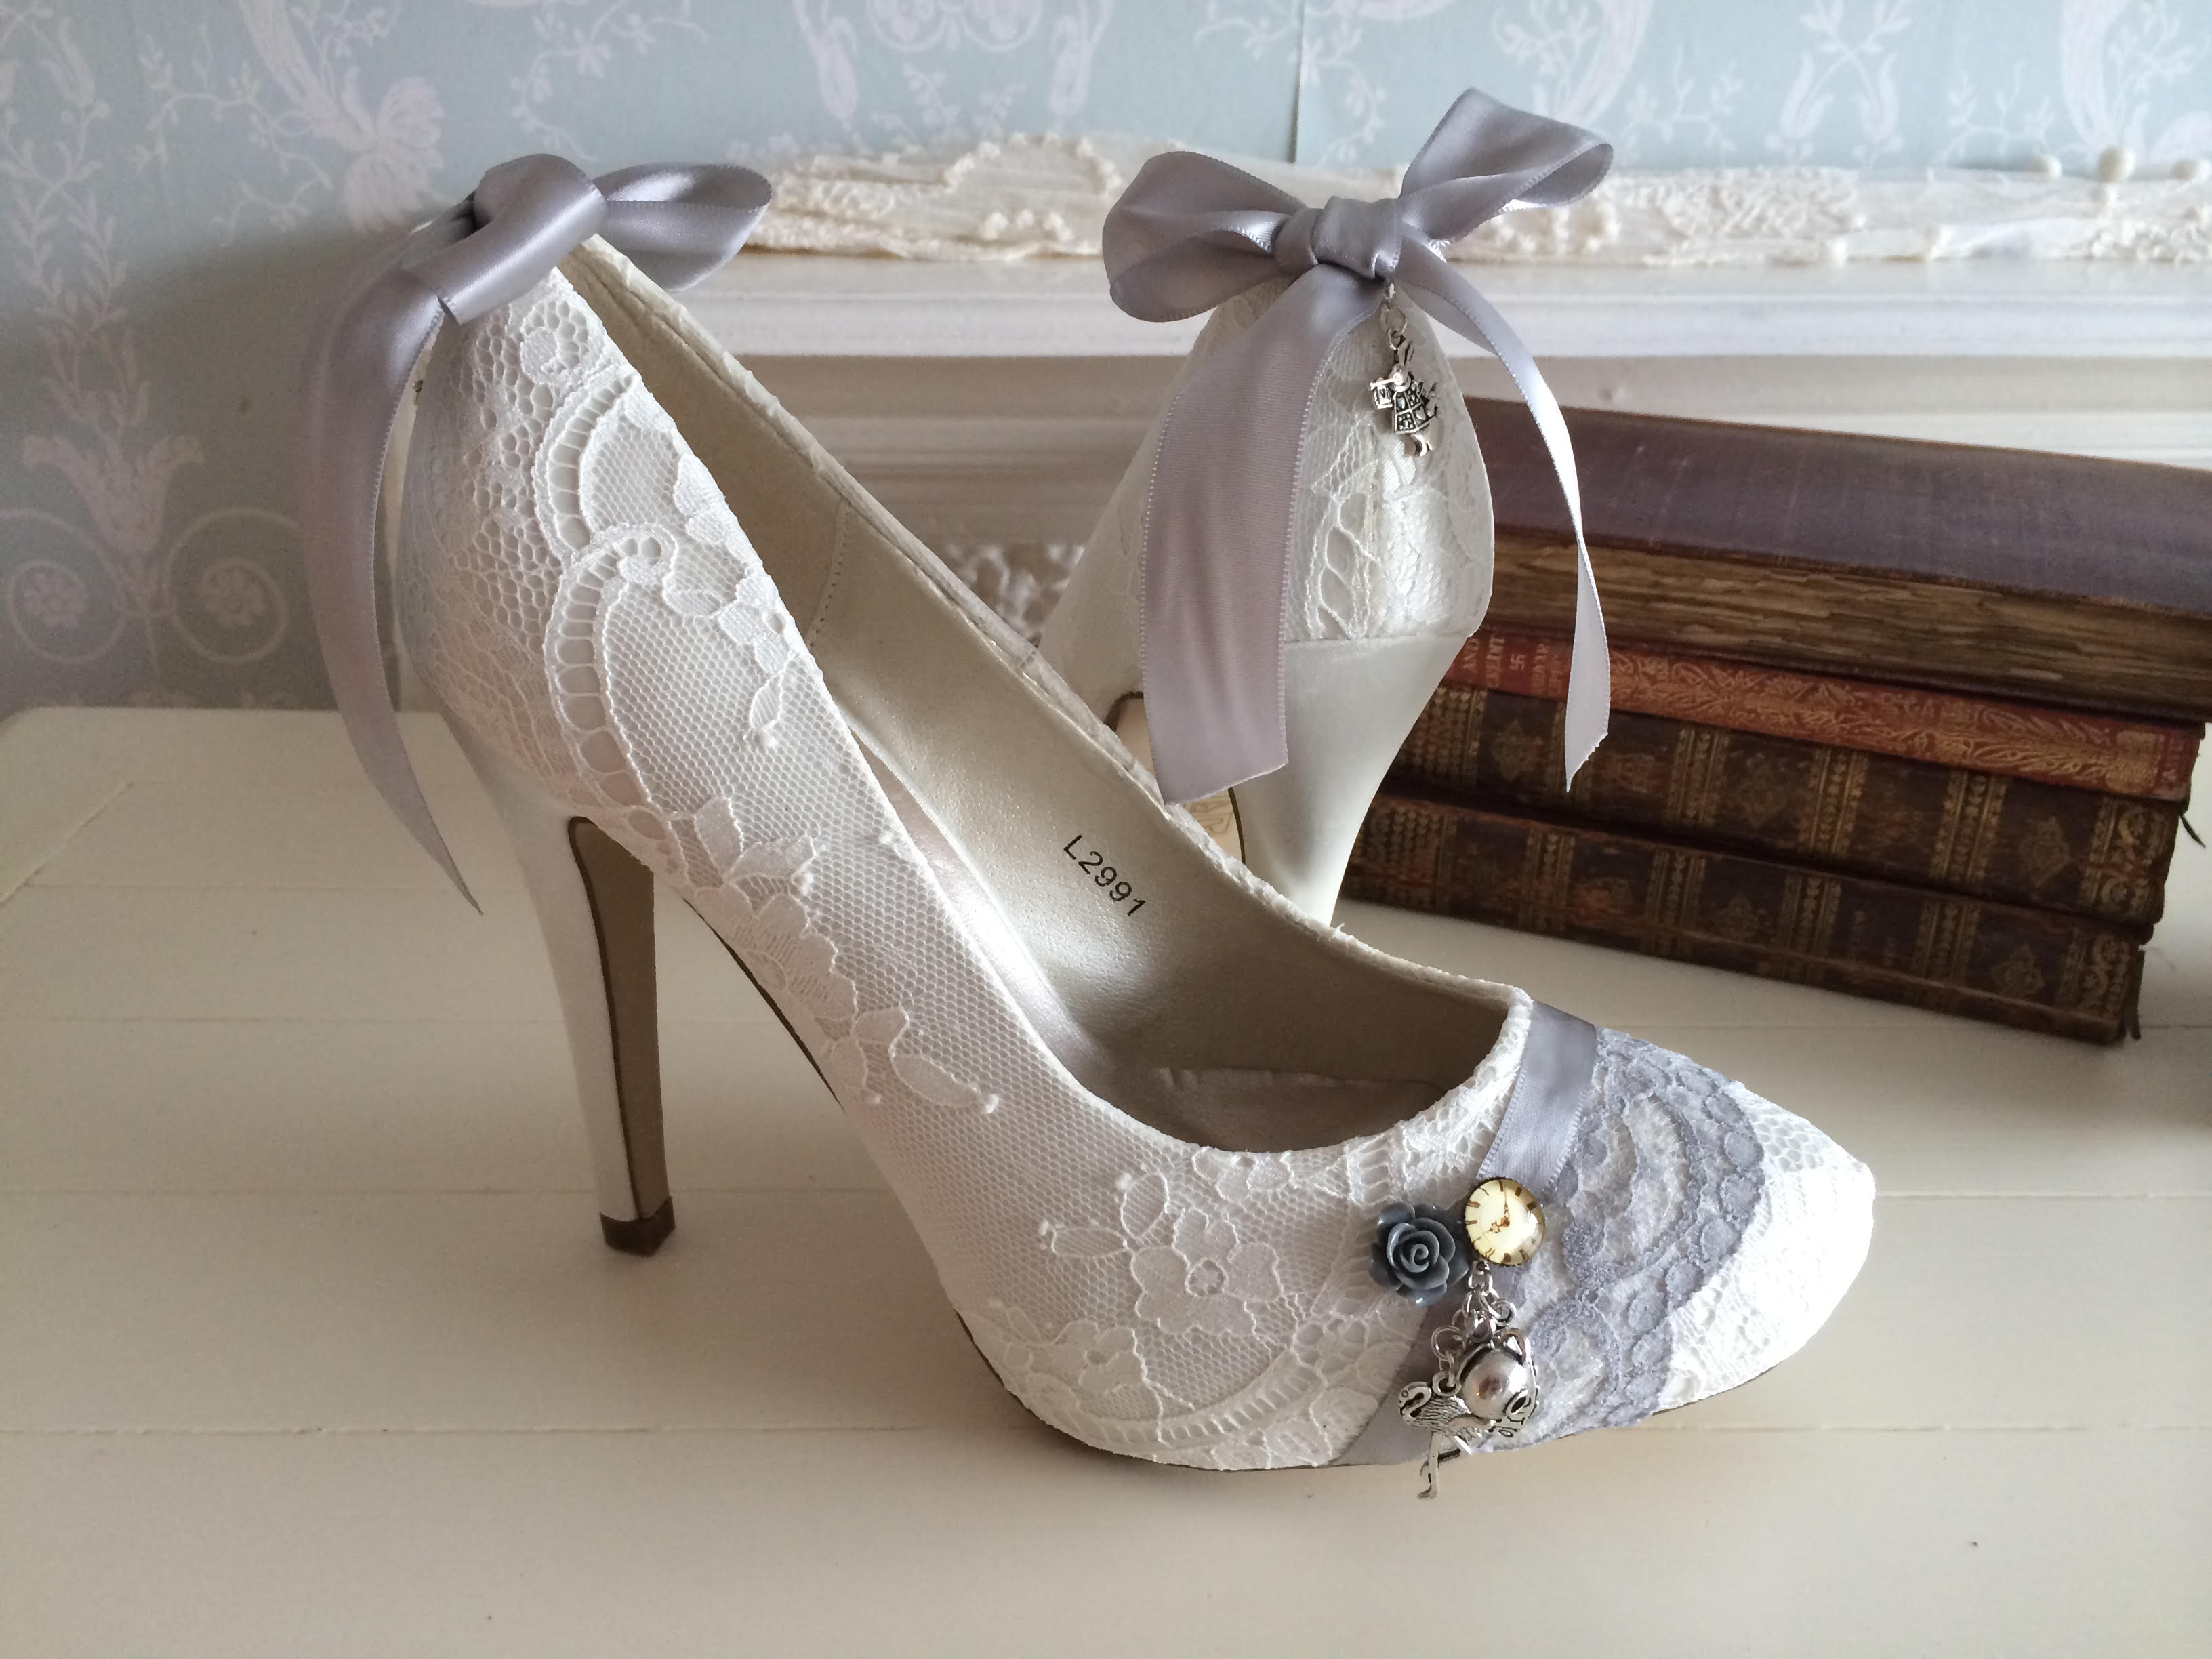 Alice in Wonderland wedding inspiration - alice shoes - alternative and unconventional wedding